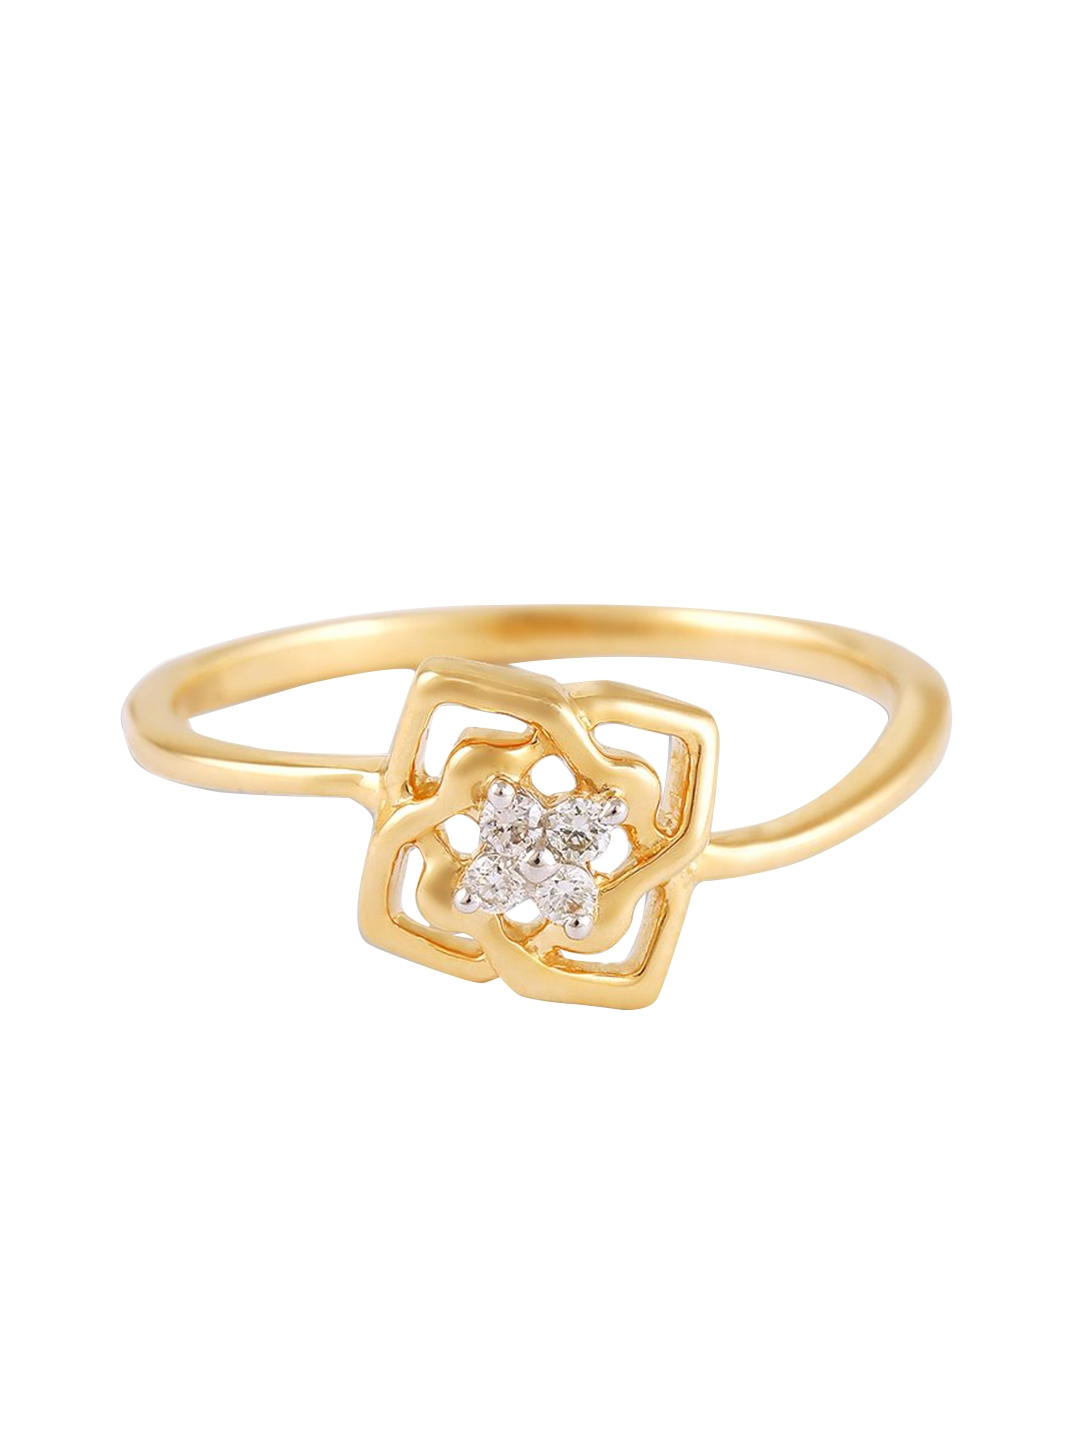 Mia by Tanishq 14KT Yellow Gold Precious Ring with Diamonds